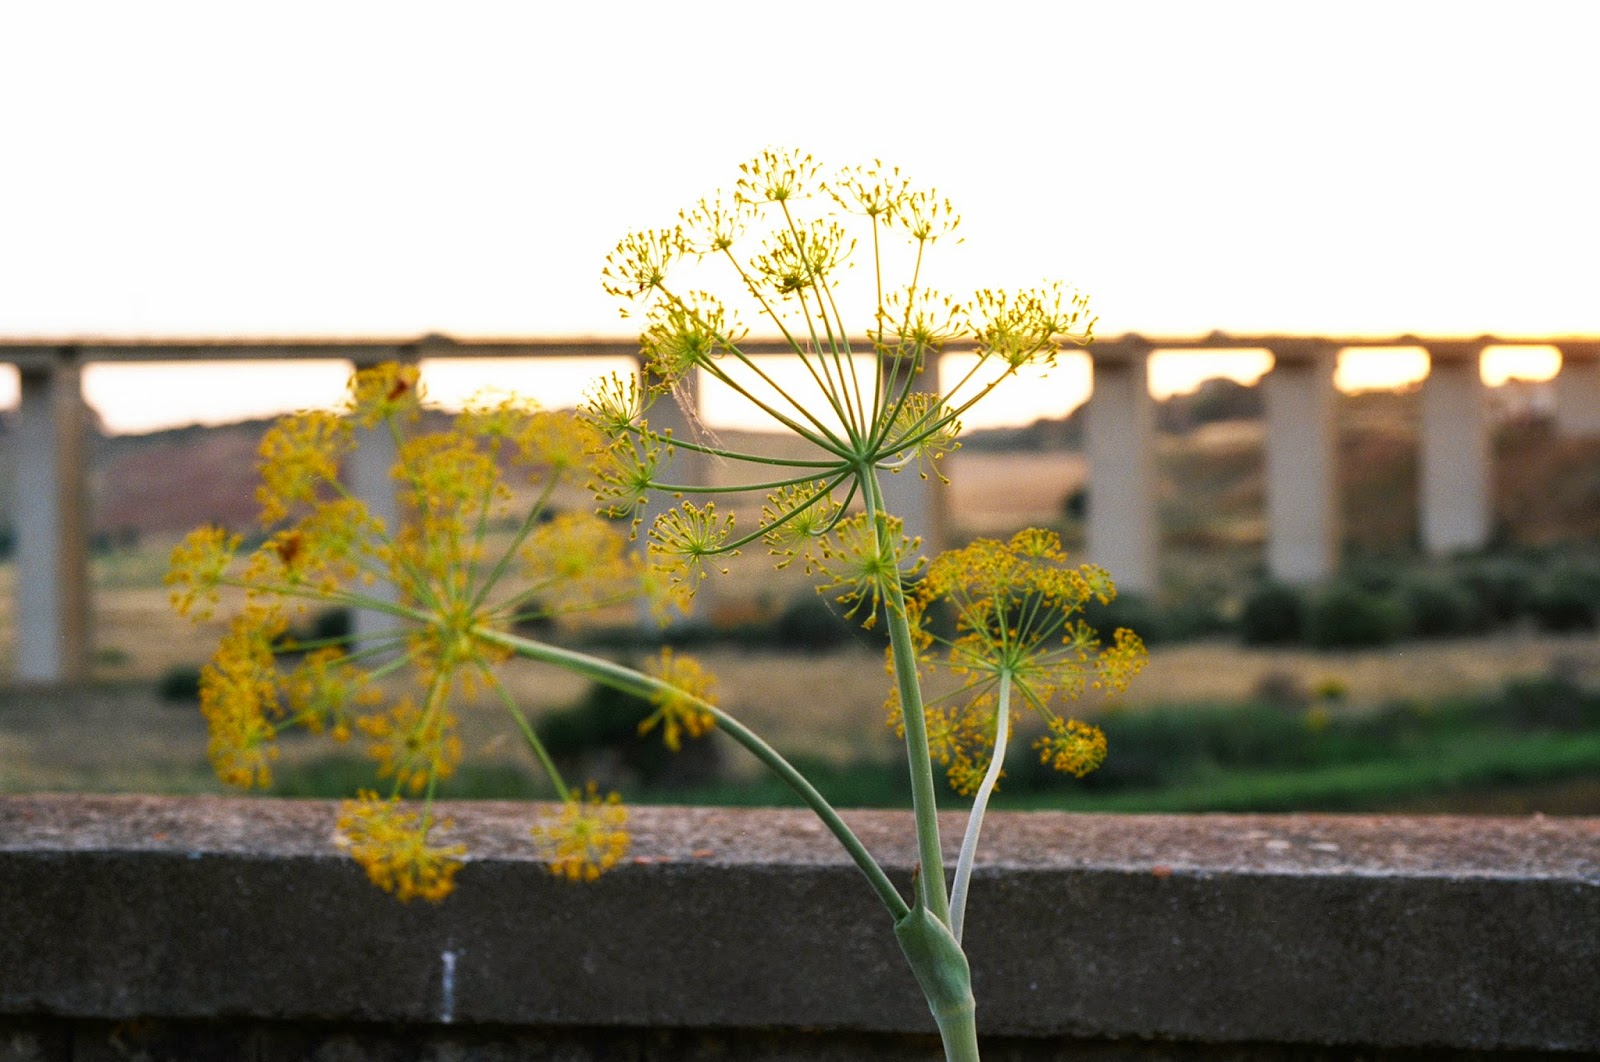 WILD FENNEL, CIVIL ENGINEERING, VIA DUCT, MOTORWAYS, TRAFFIC, CONGESTION, CLIMATE CHANGE, 2015 GENERAL ELECTION, © VAC 100 DAYS 4 MILLION CONVERSATIONS, GREEN PARTY